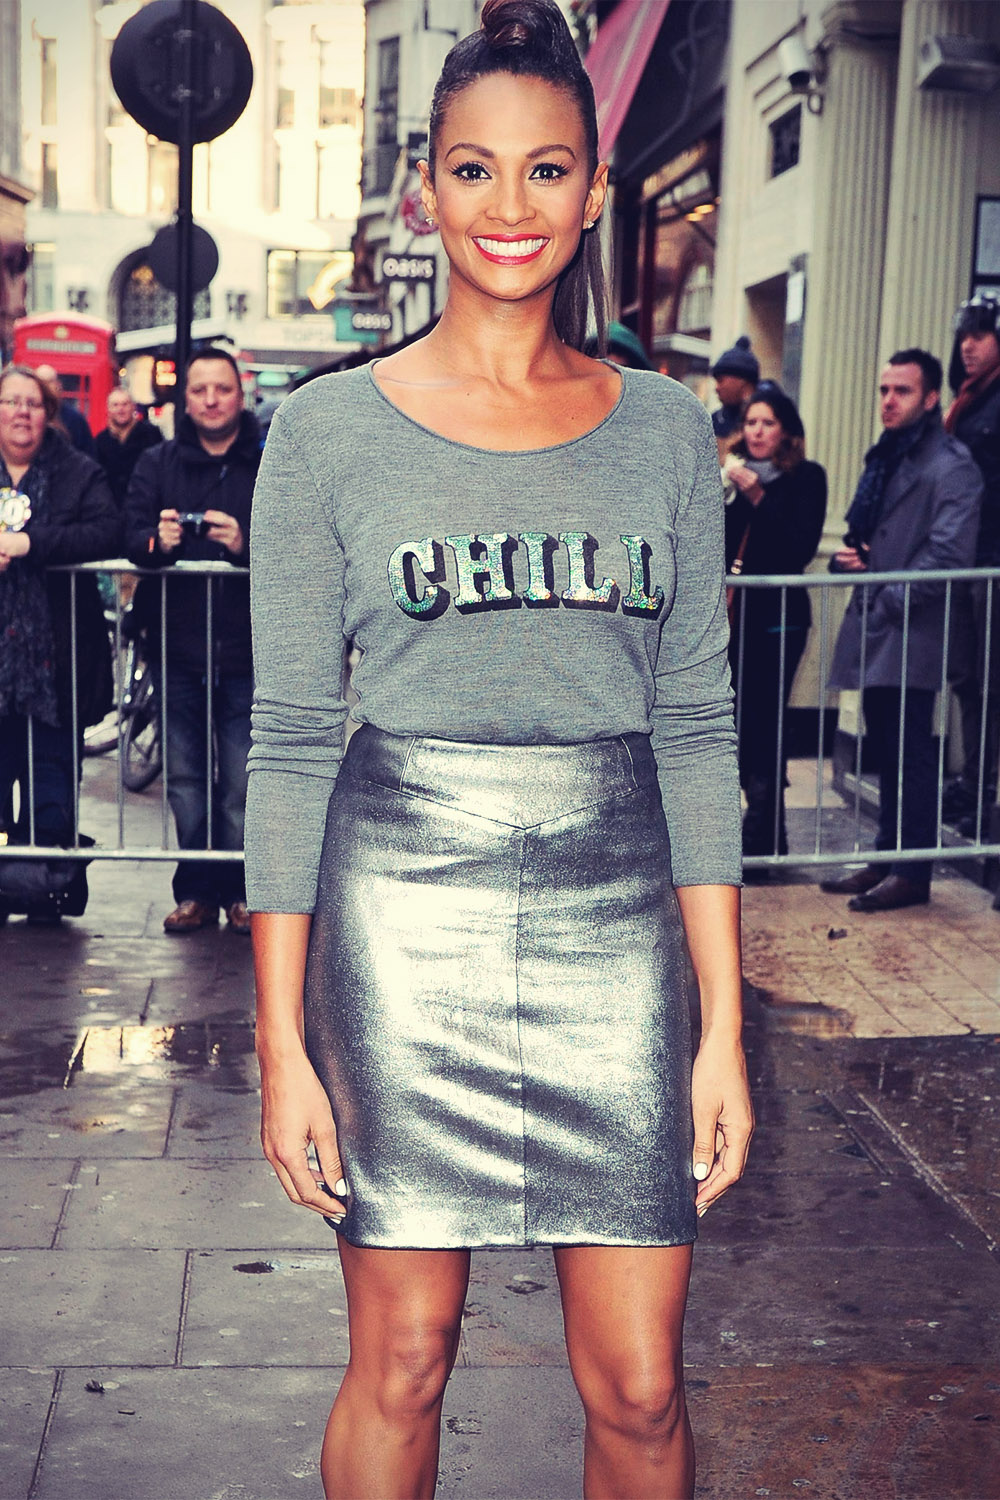 Alesha Dixon attends Britain's Got Talent auditions